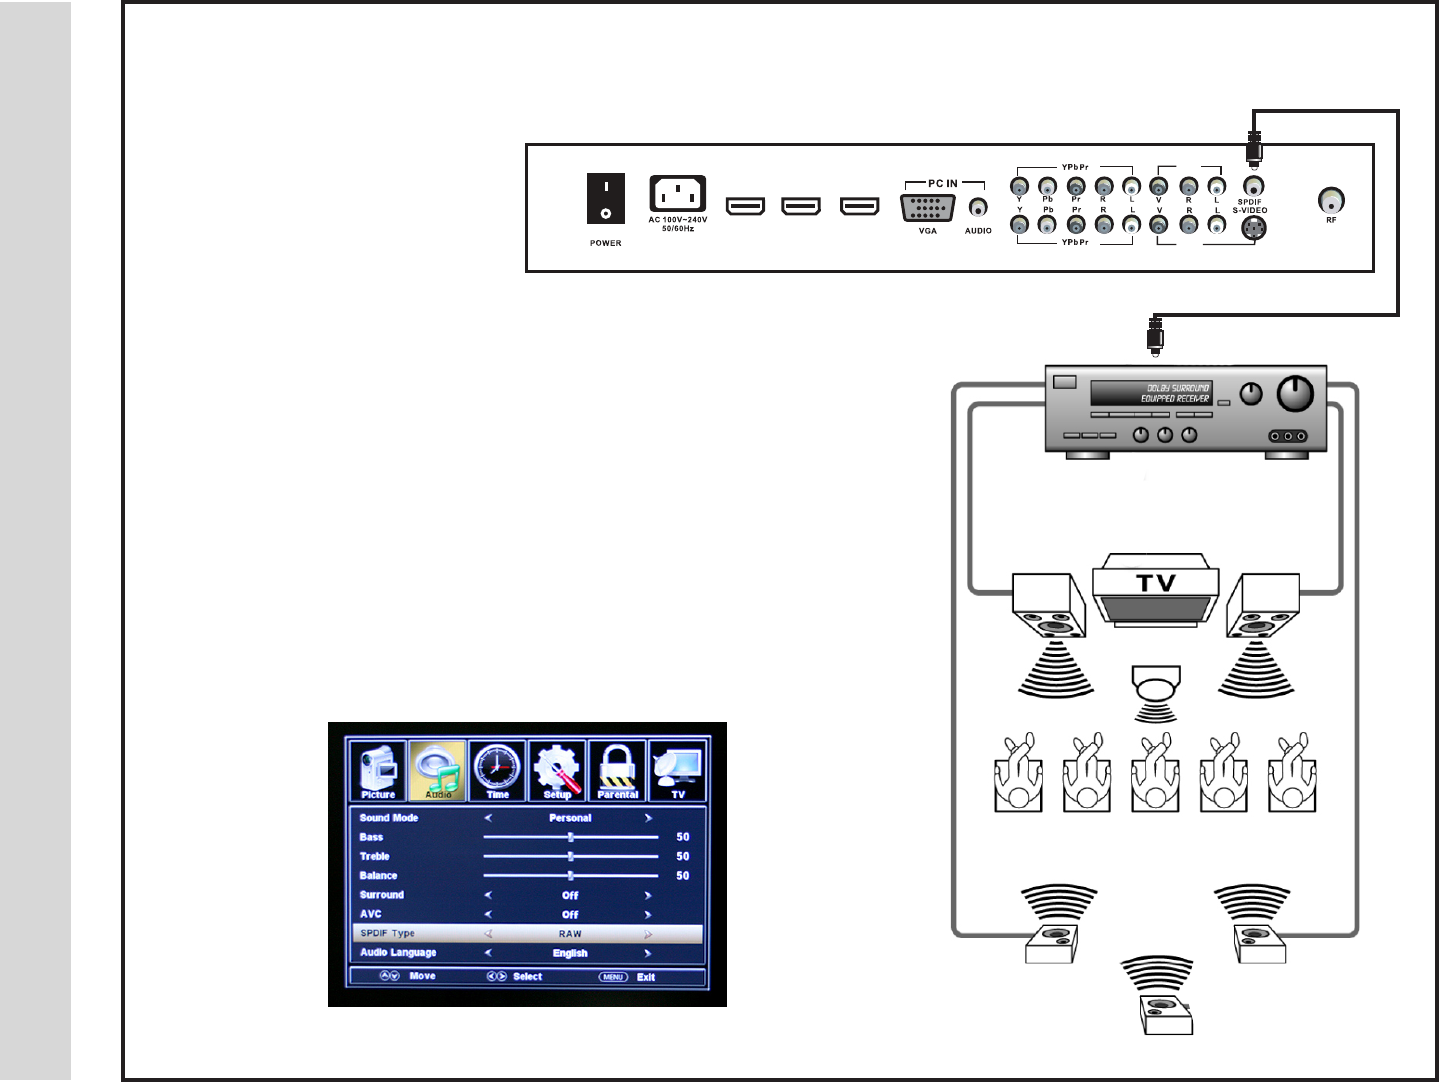 [SCHEMATICS_48YU]  Apex Digital LD4088 Connection to a Home, Theater System | Apex Ld 4088 Power Wiring Diagram |  | Manuals